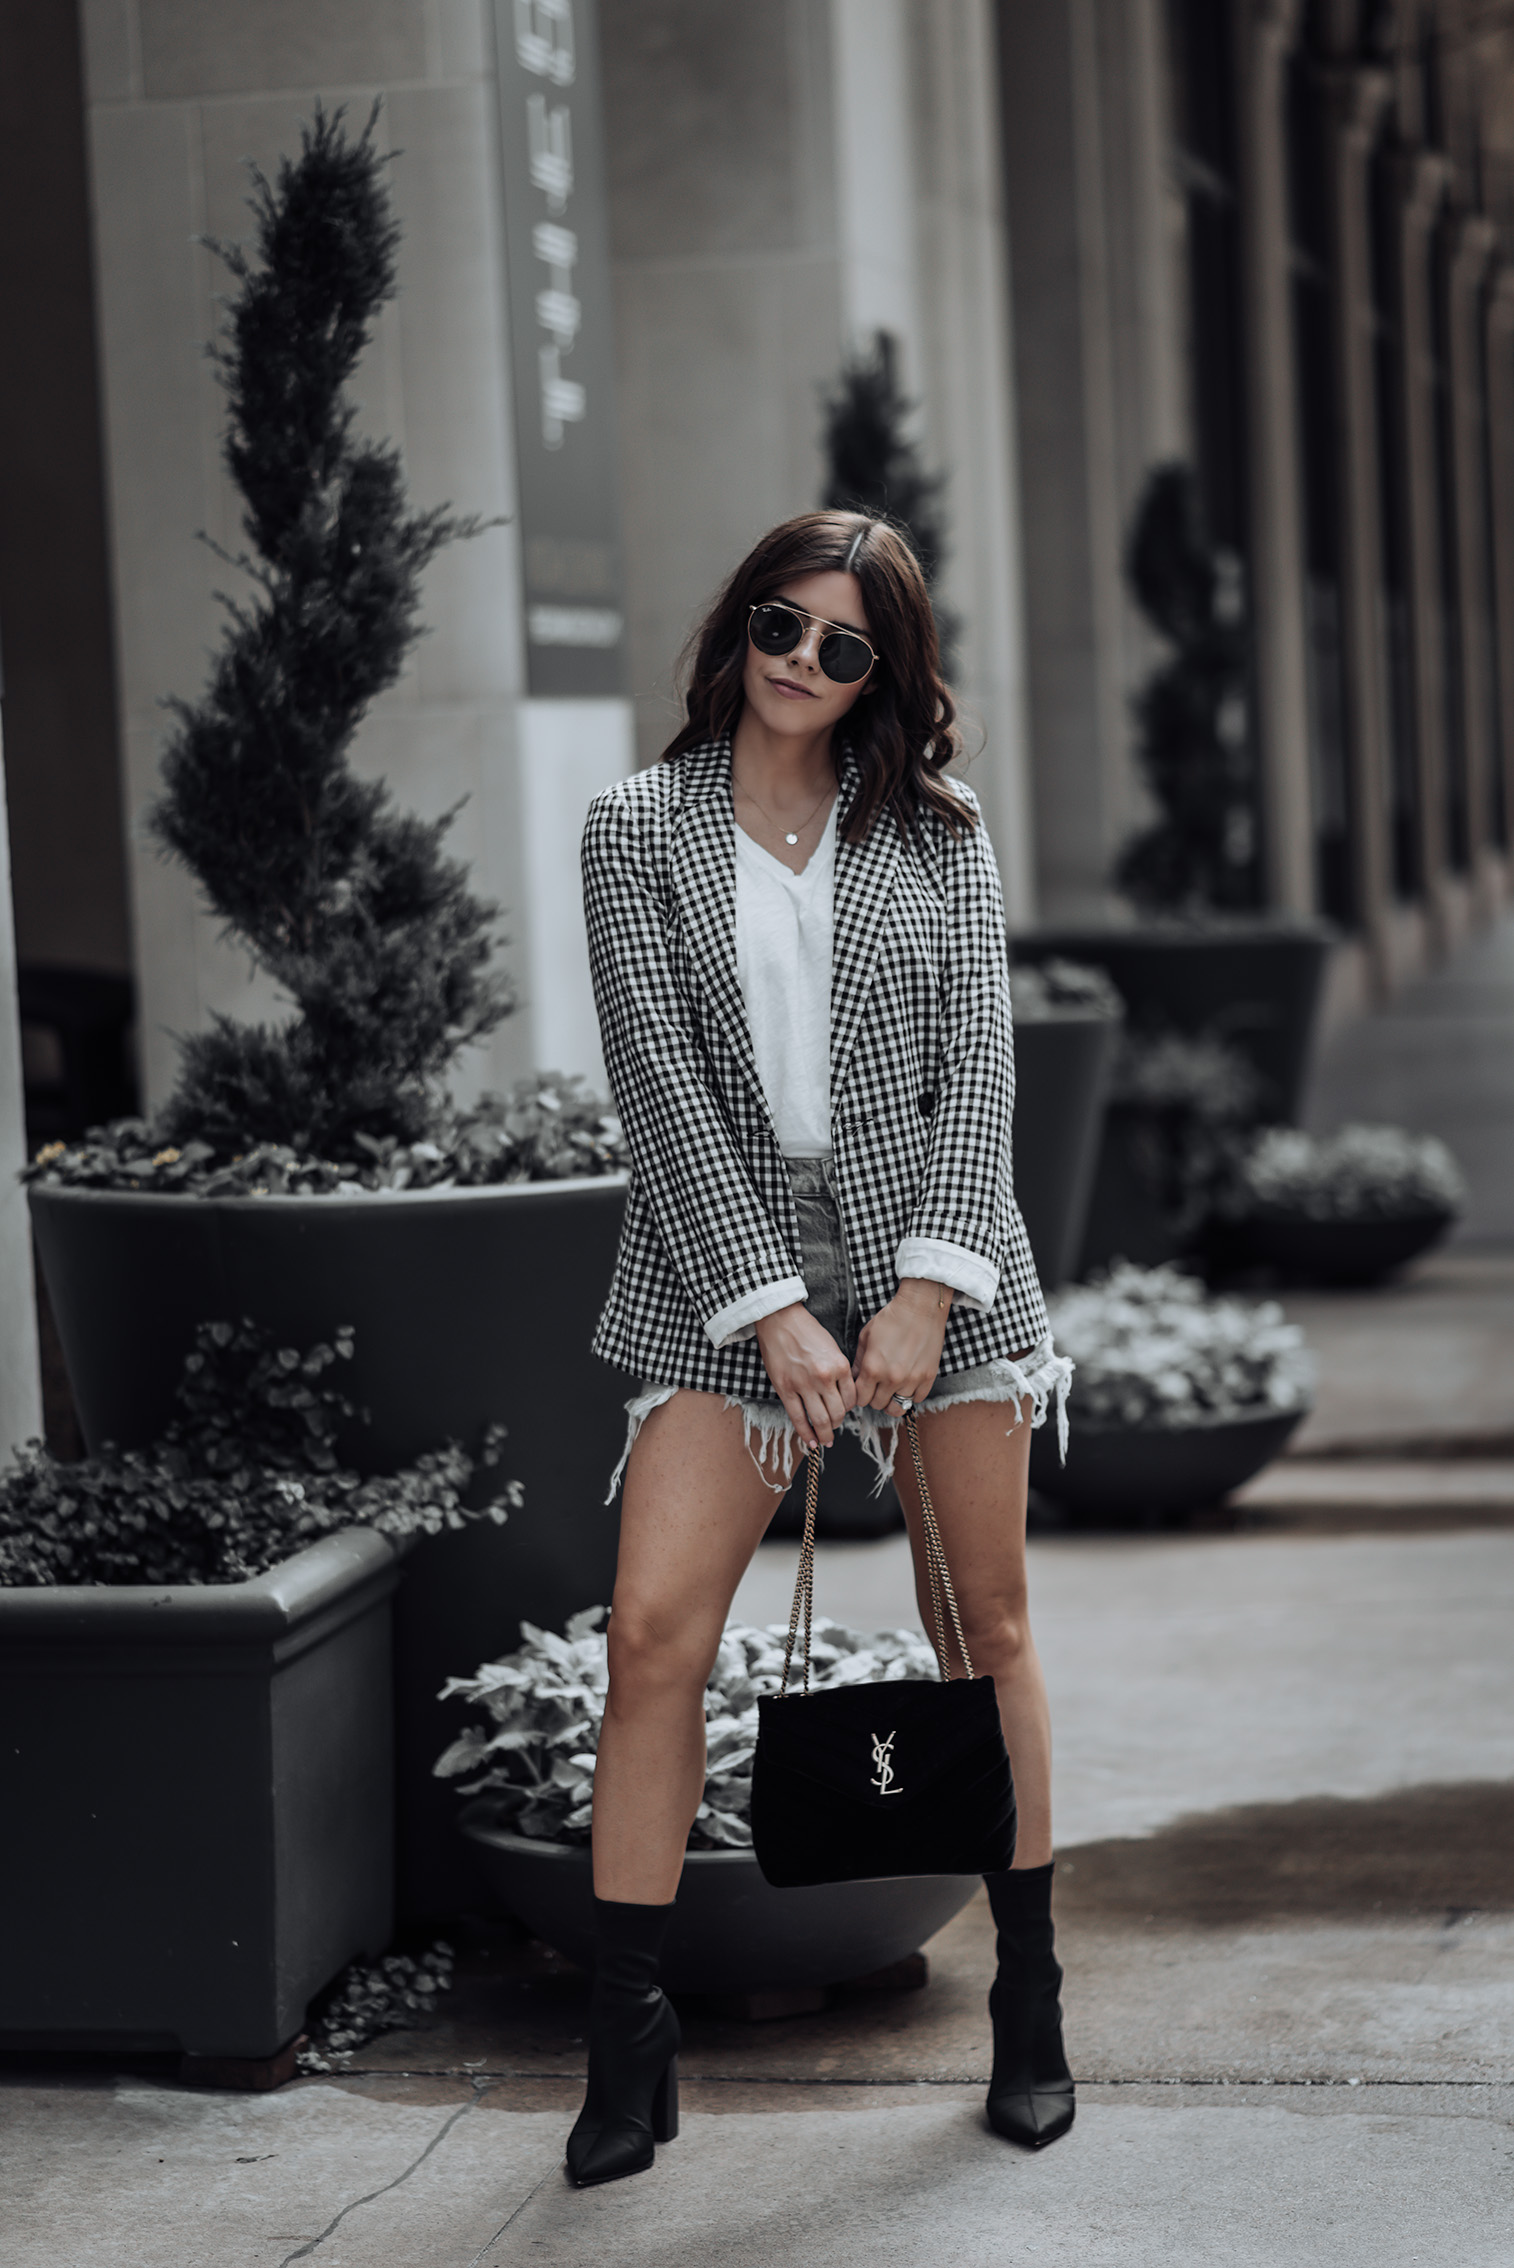 Gingham Blazer (similar) | Agolde Parker Vintage Cut Off Denim Shorts | Steve Madden Lombard Booties | Saint Laurent Monogram Velvet Bag #liketkit #gingham #ootd #streetstyle #denimcutoffs